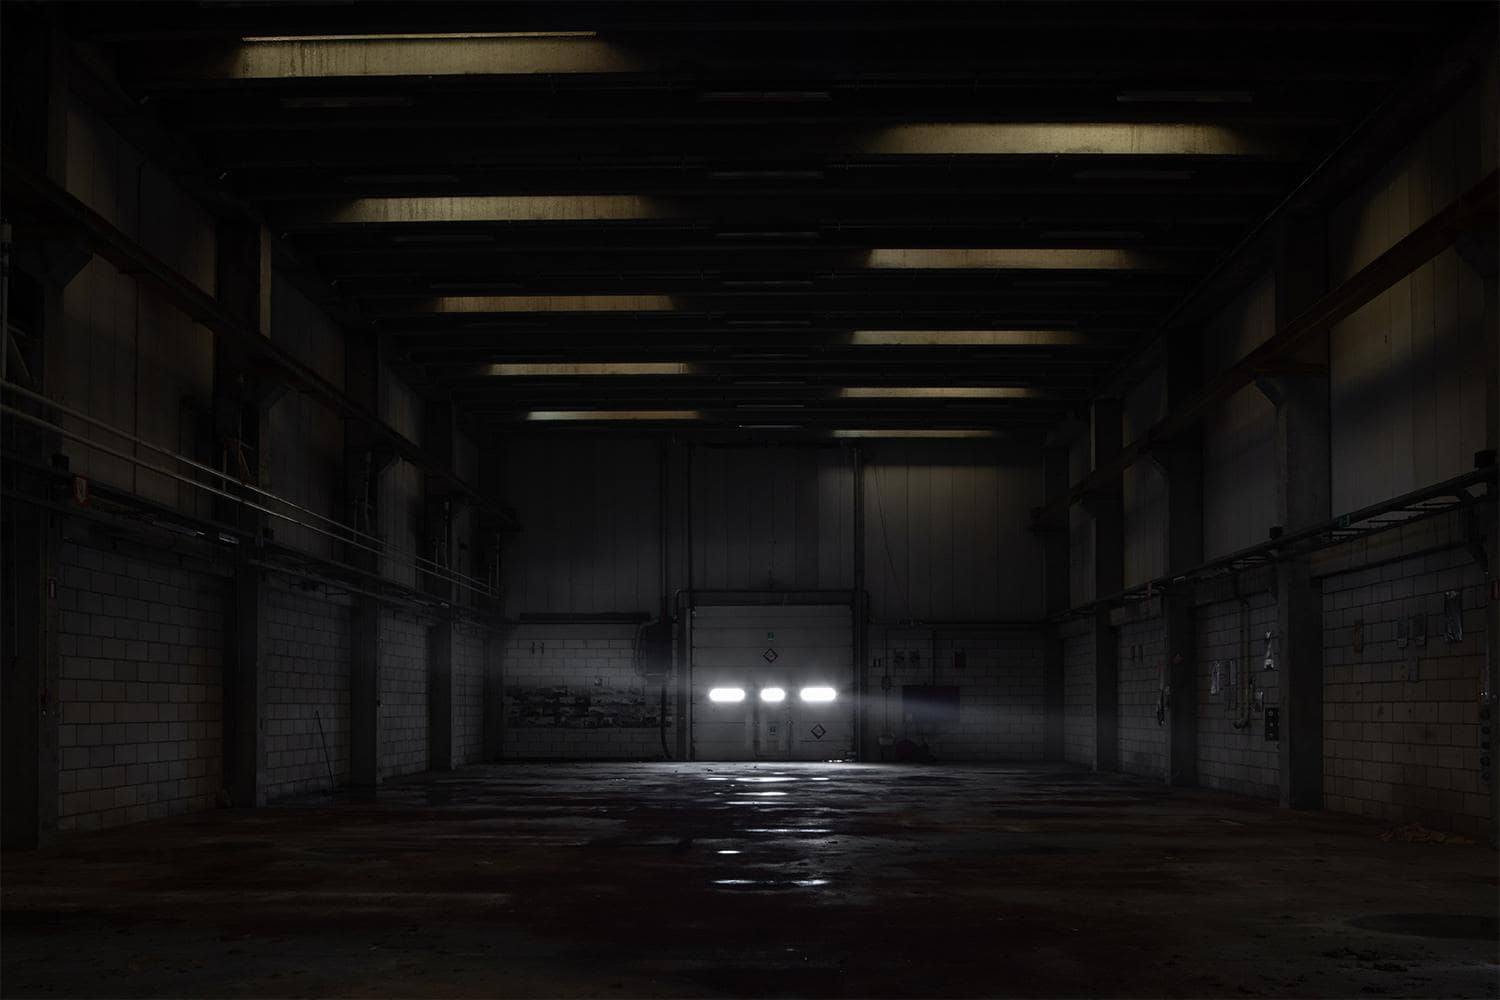 light through warehouse door